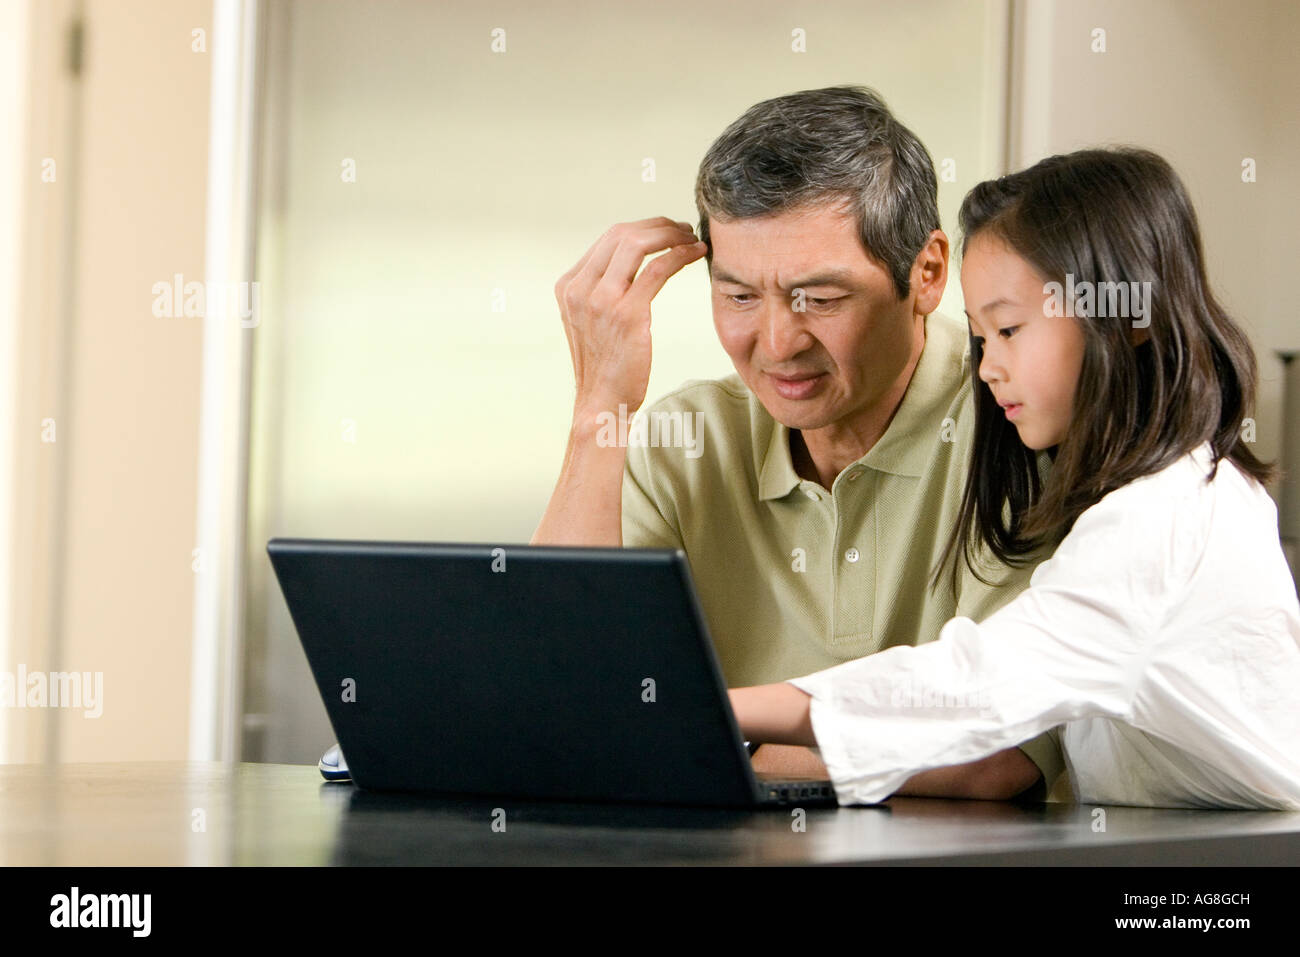 Grandfather and Granddaughter on Laptop - Stock Image